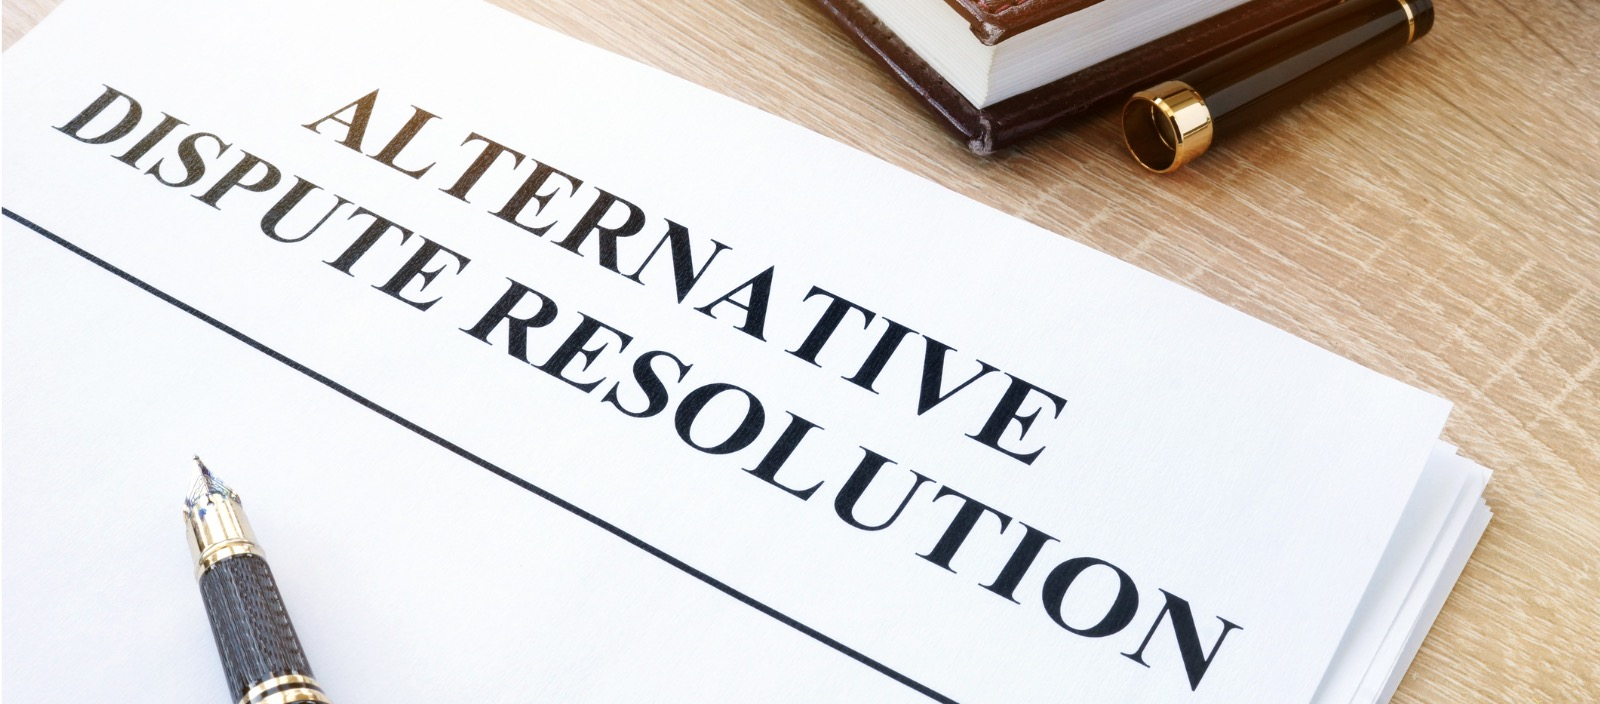 MAZE Resolutions - Mediation, Arbitration, Dispute Resolution Services